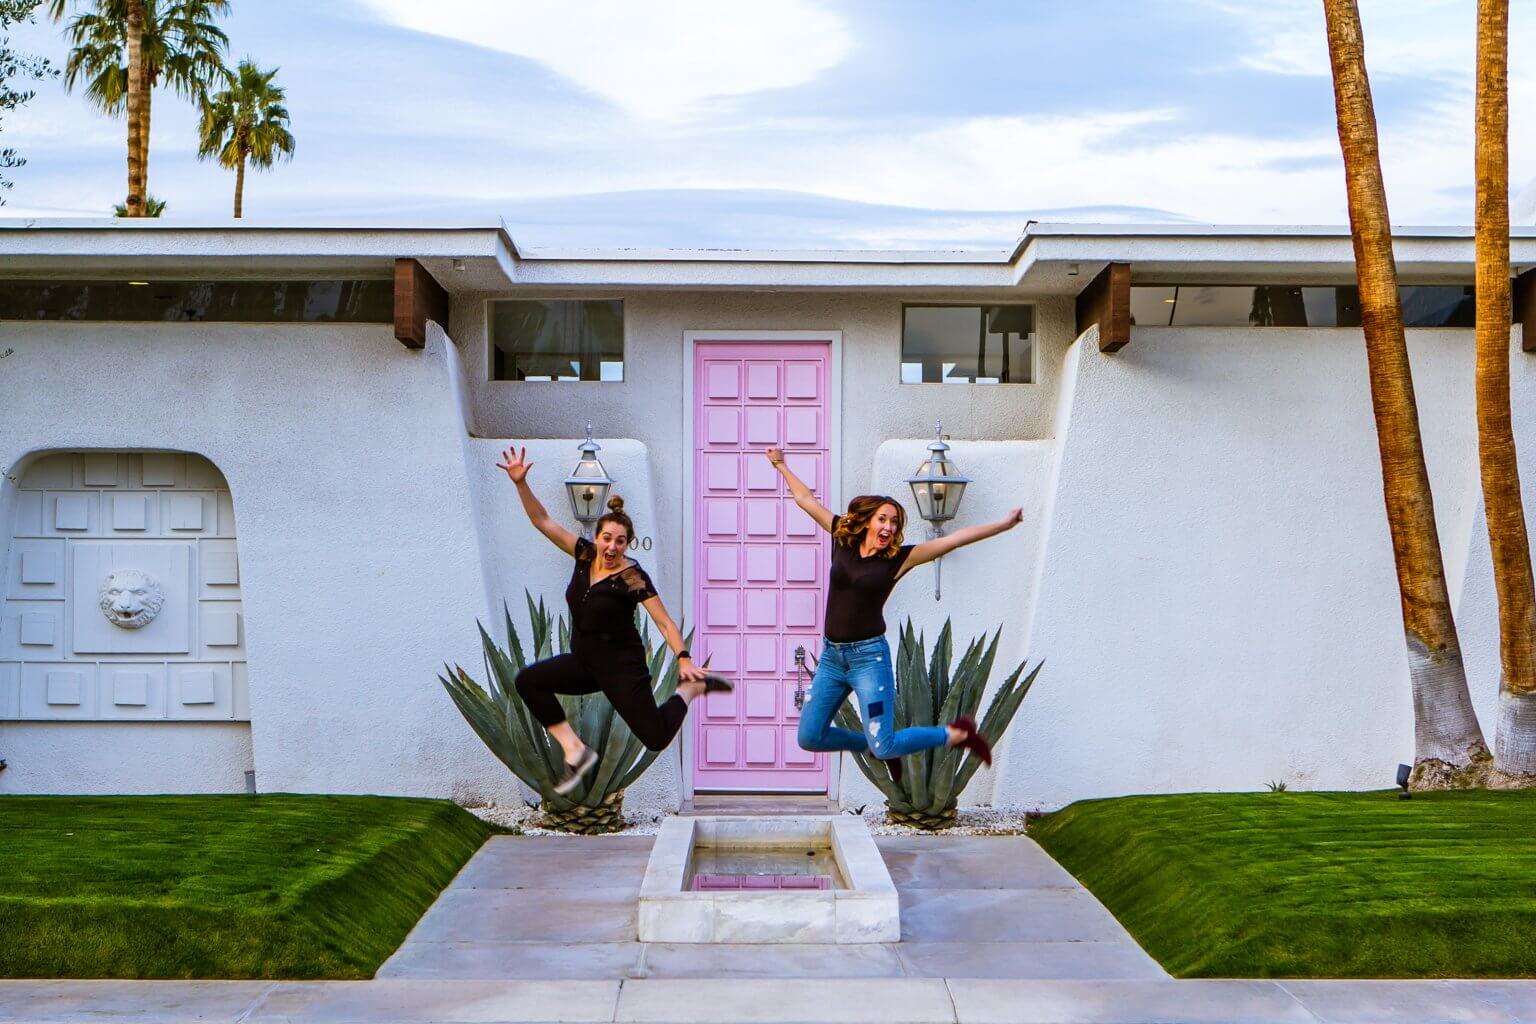 Best Things to do in Palm Springs